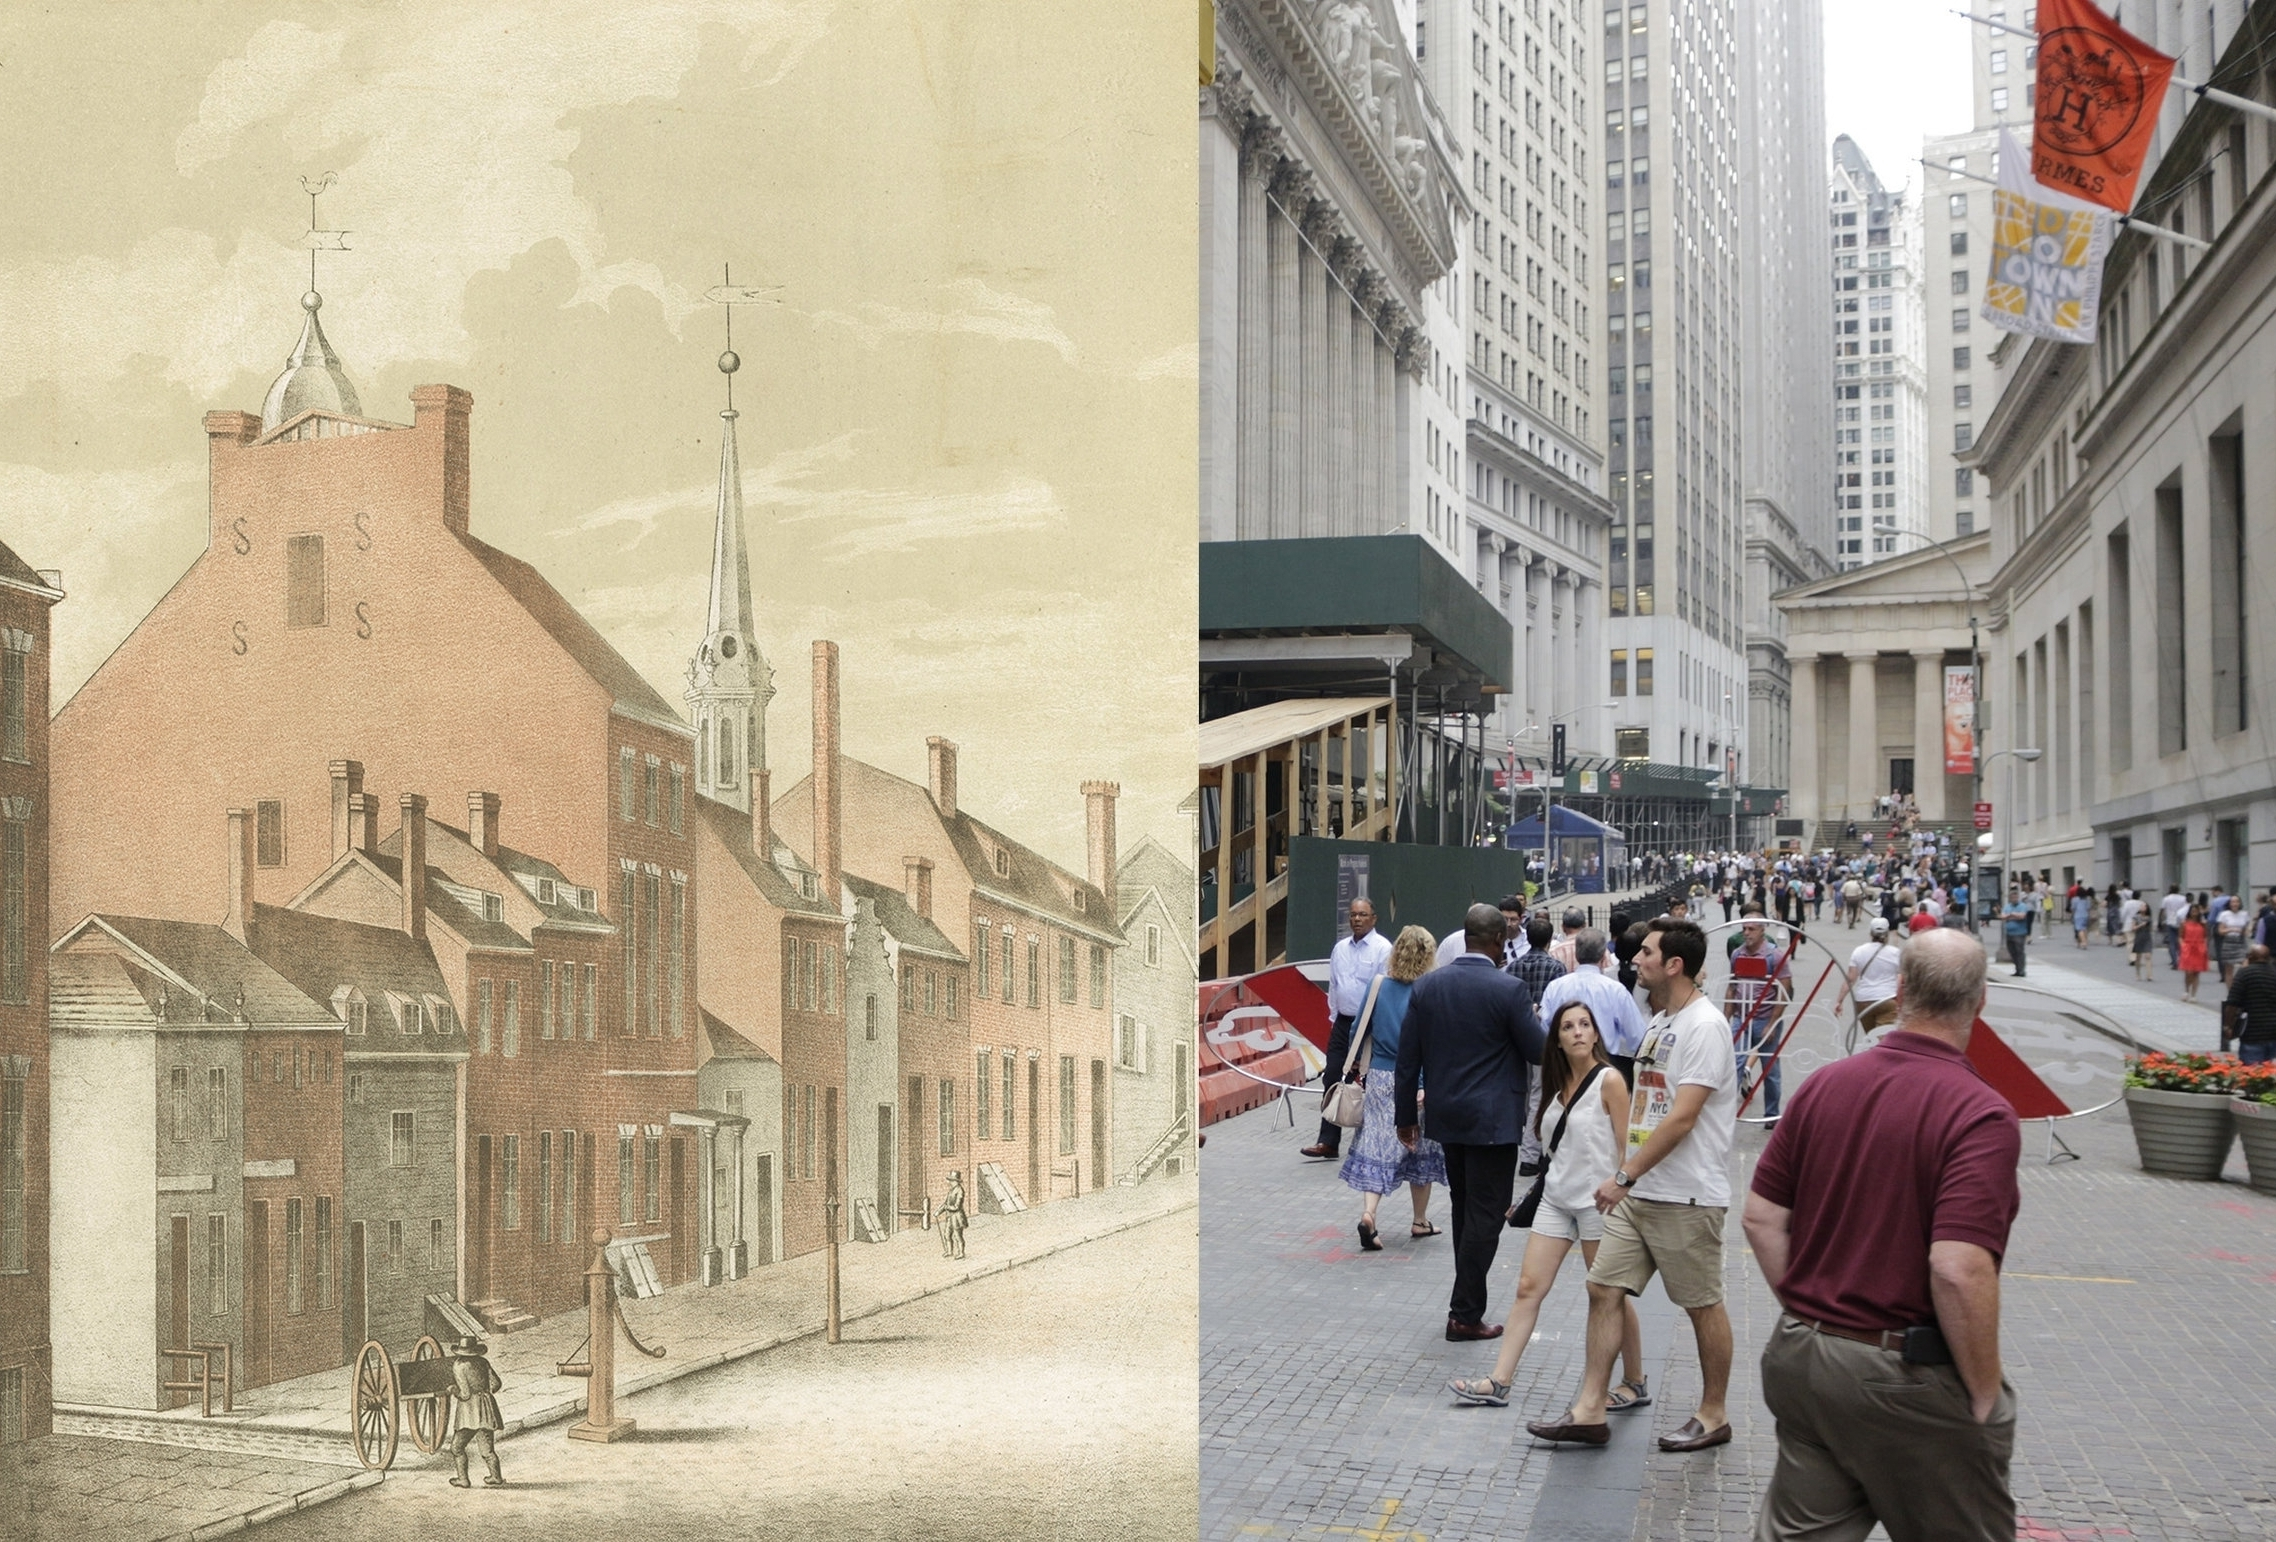 From New Amsterdam to NYC - What did Manhattan look like to early colonists, and how has it evolved over time? Compare illustrations showing the City in the 1600s and 1700s with photographs of the same locations now.